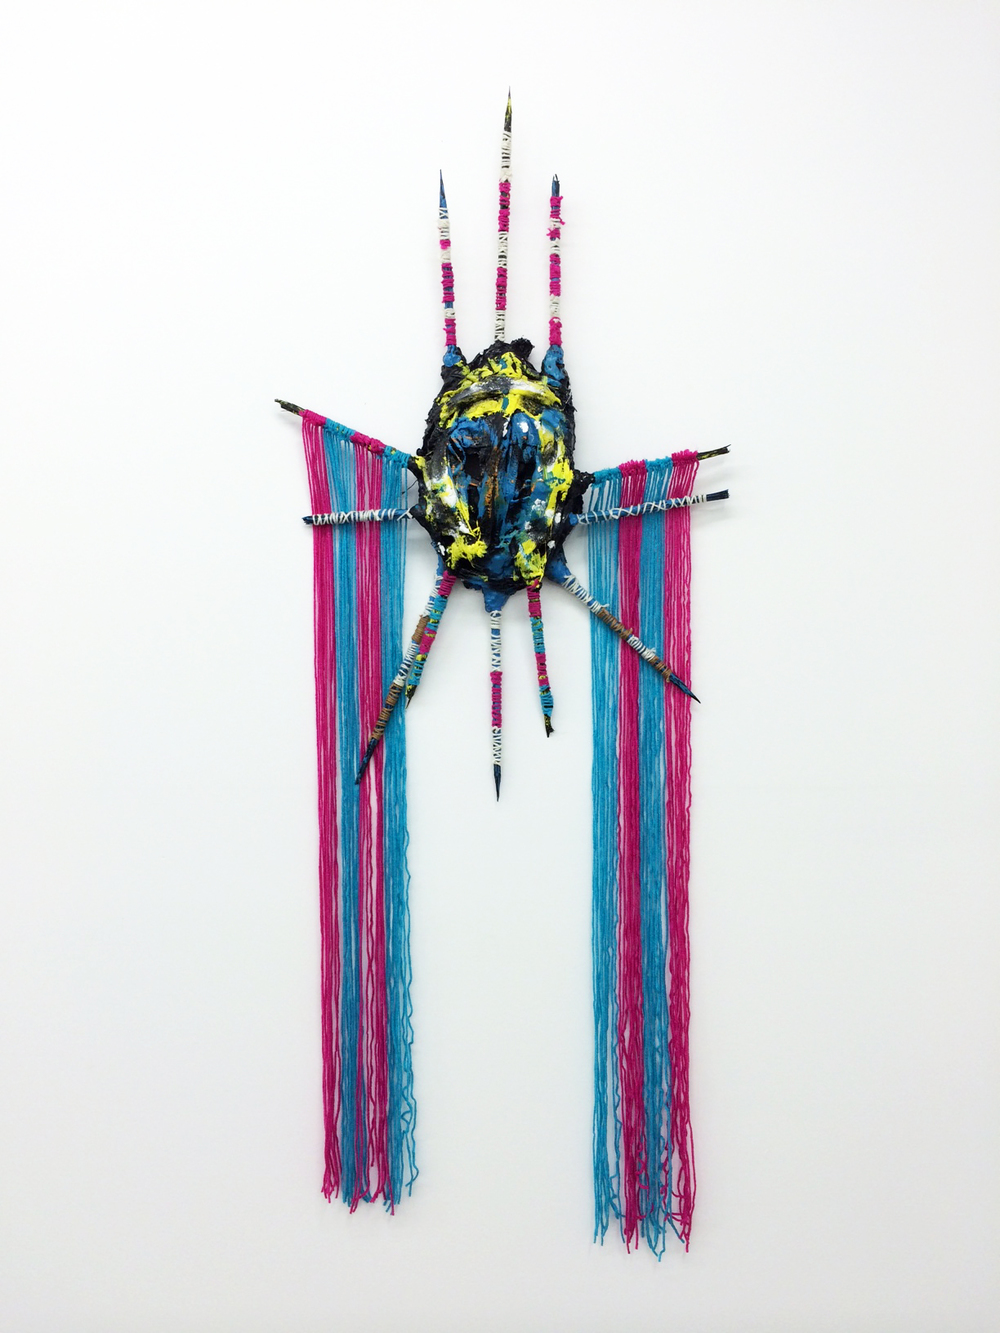 Adam D. Miller, Gunner Mask, 2014 plaster, canvas, wood, yarn, enamel and oil